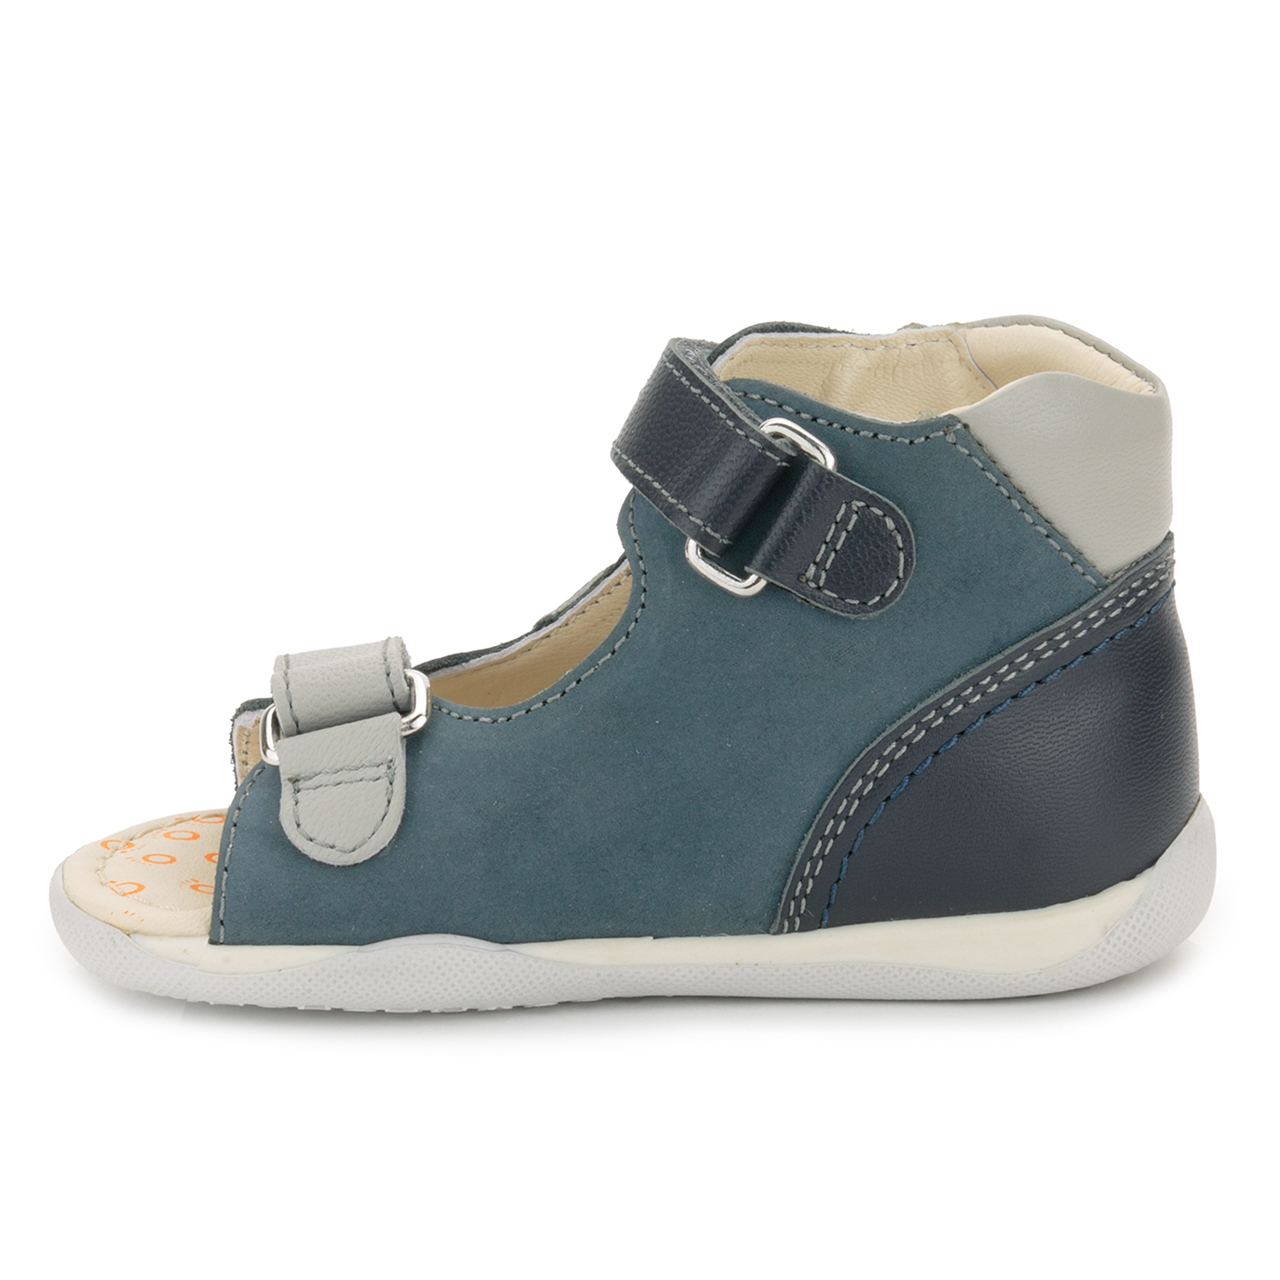 Memo Shoes. Memo Dino Jeans First Walker Sandals ...